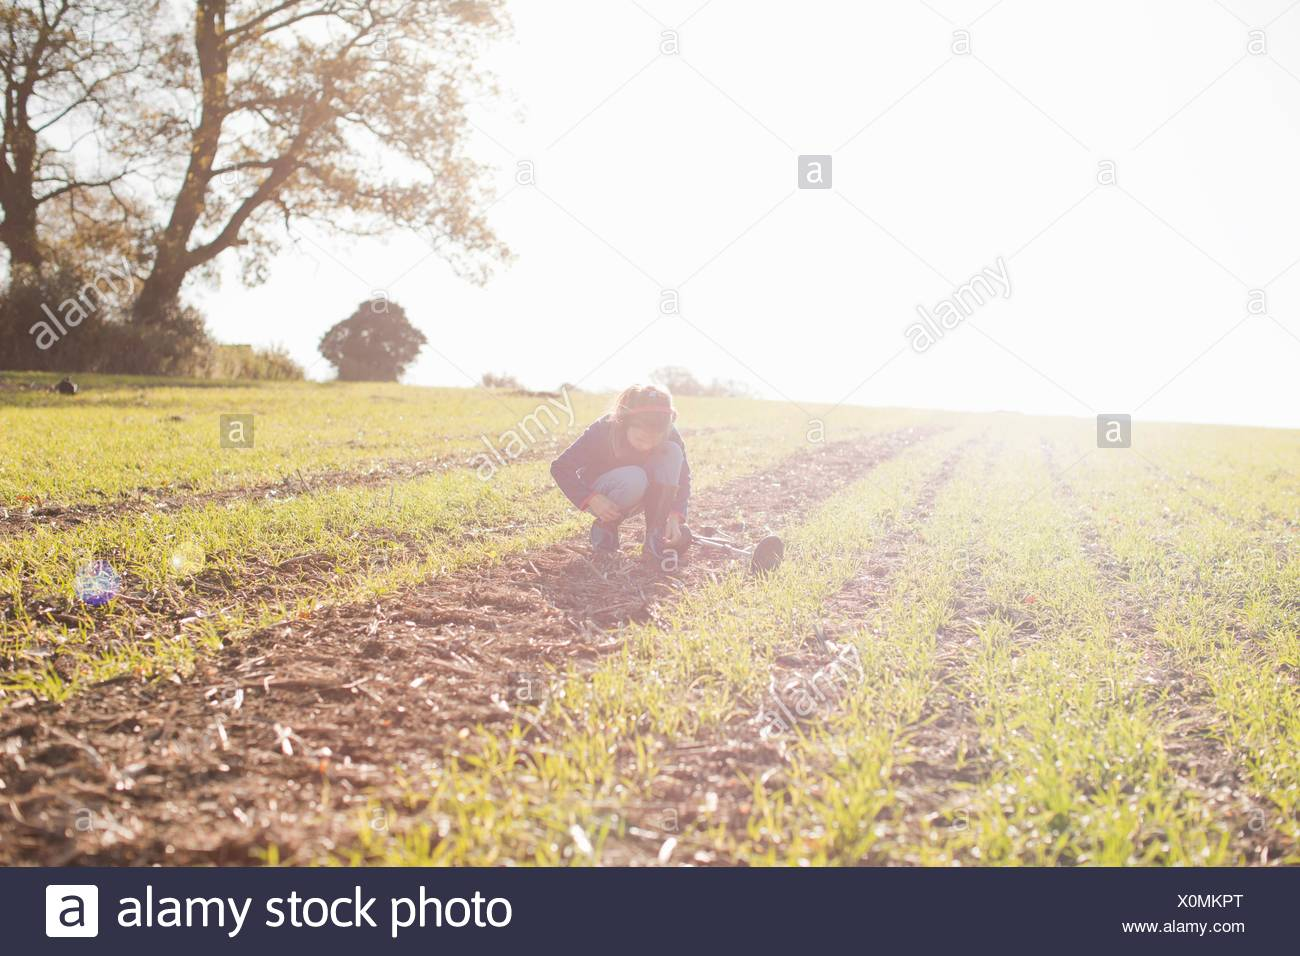 Girl with metal detector crouching and staring down in field - Stock Image